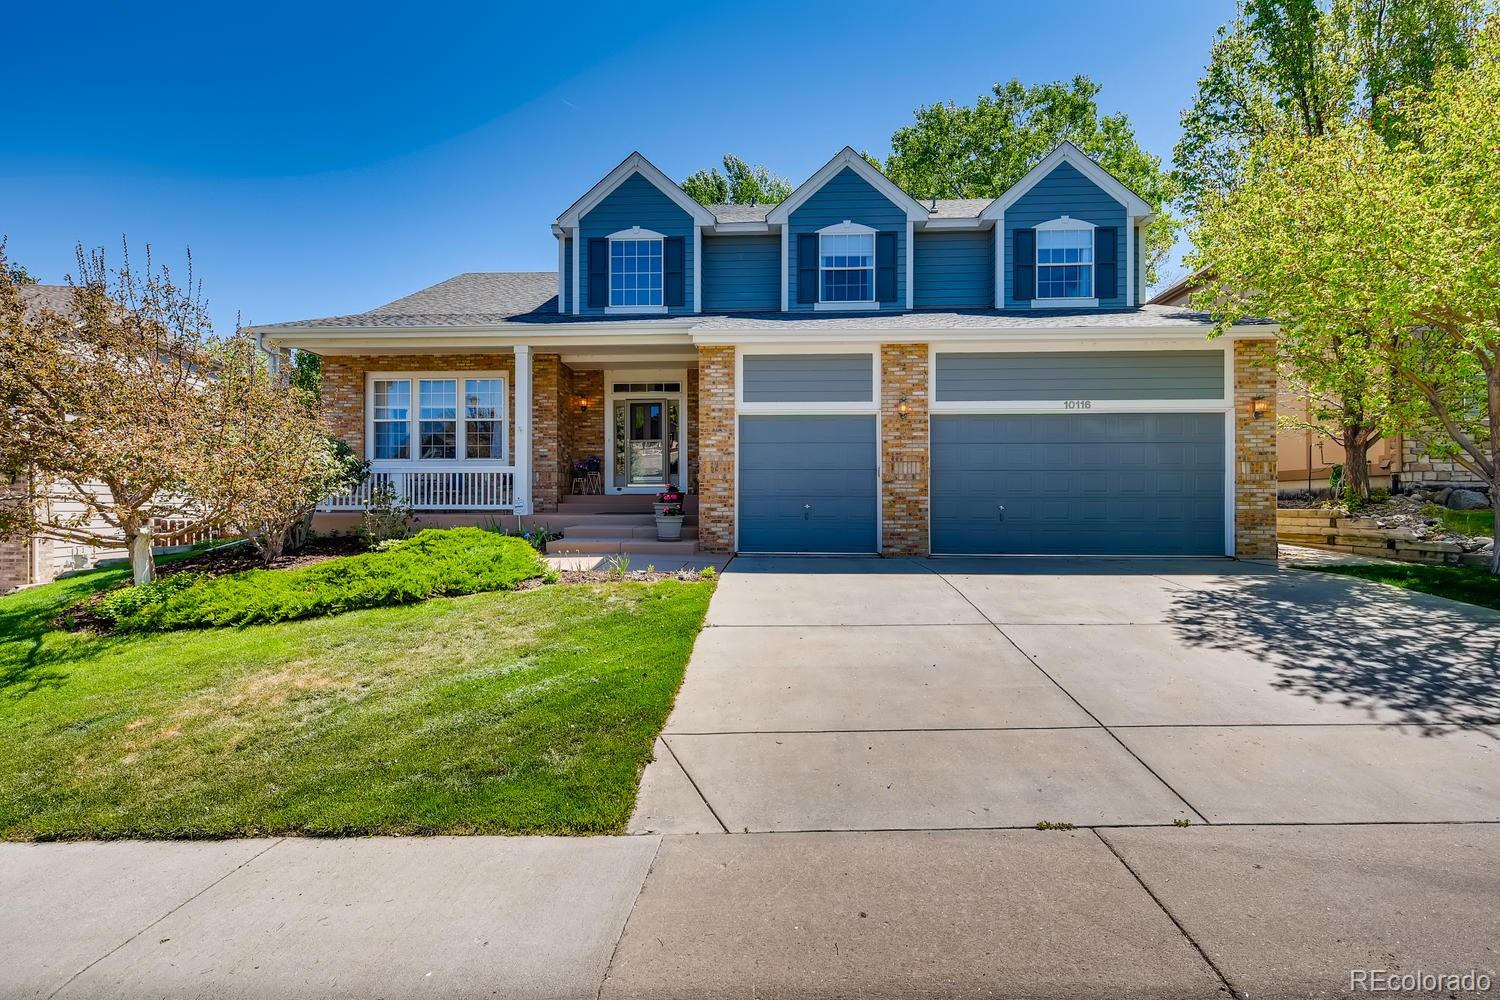 MLS# 4050127 - 1 - 10116 Mockingbird Lane, Highlands Ranch, CO 80129